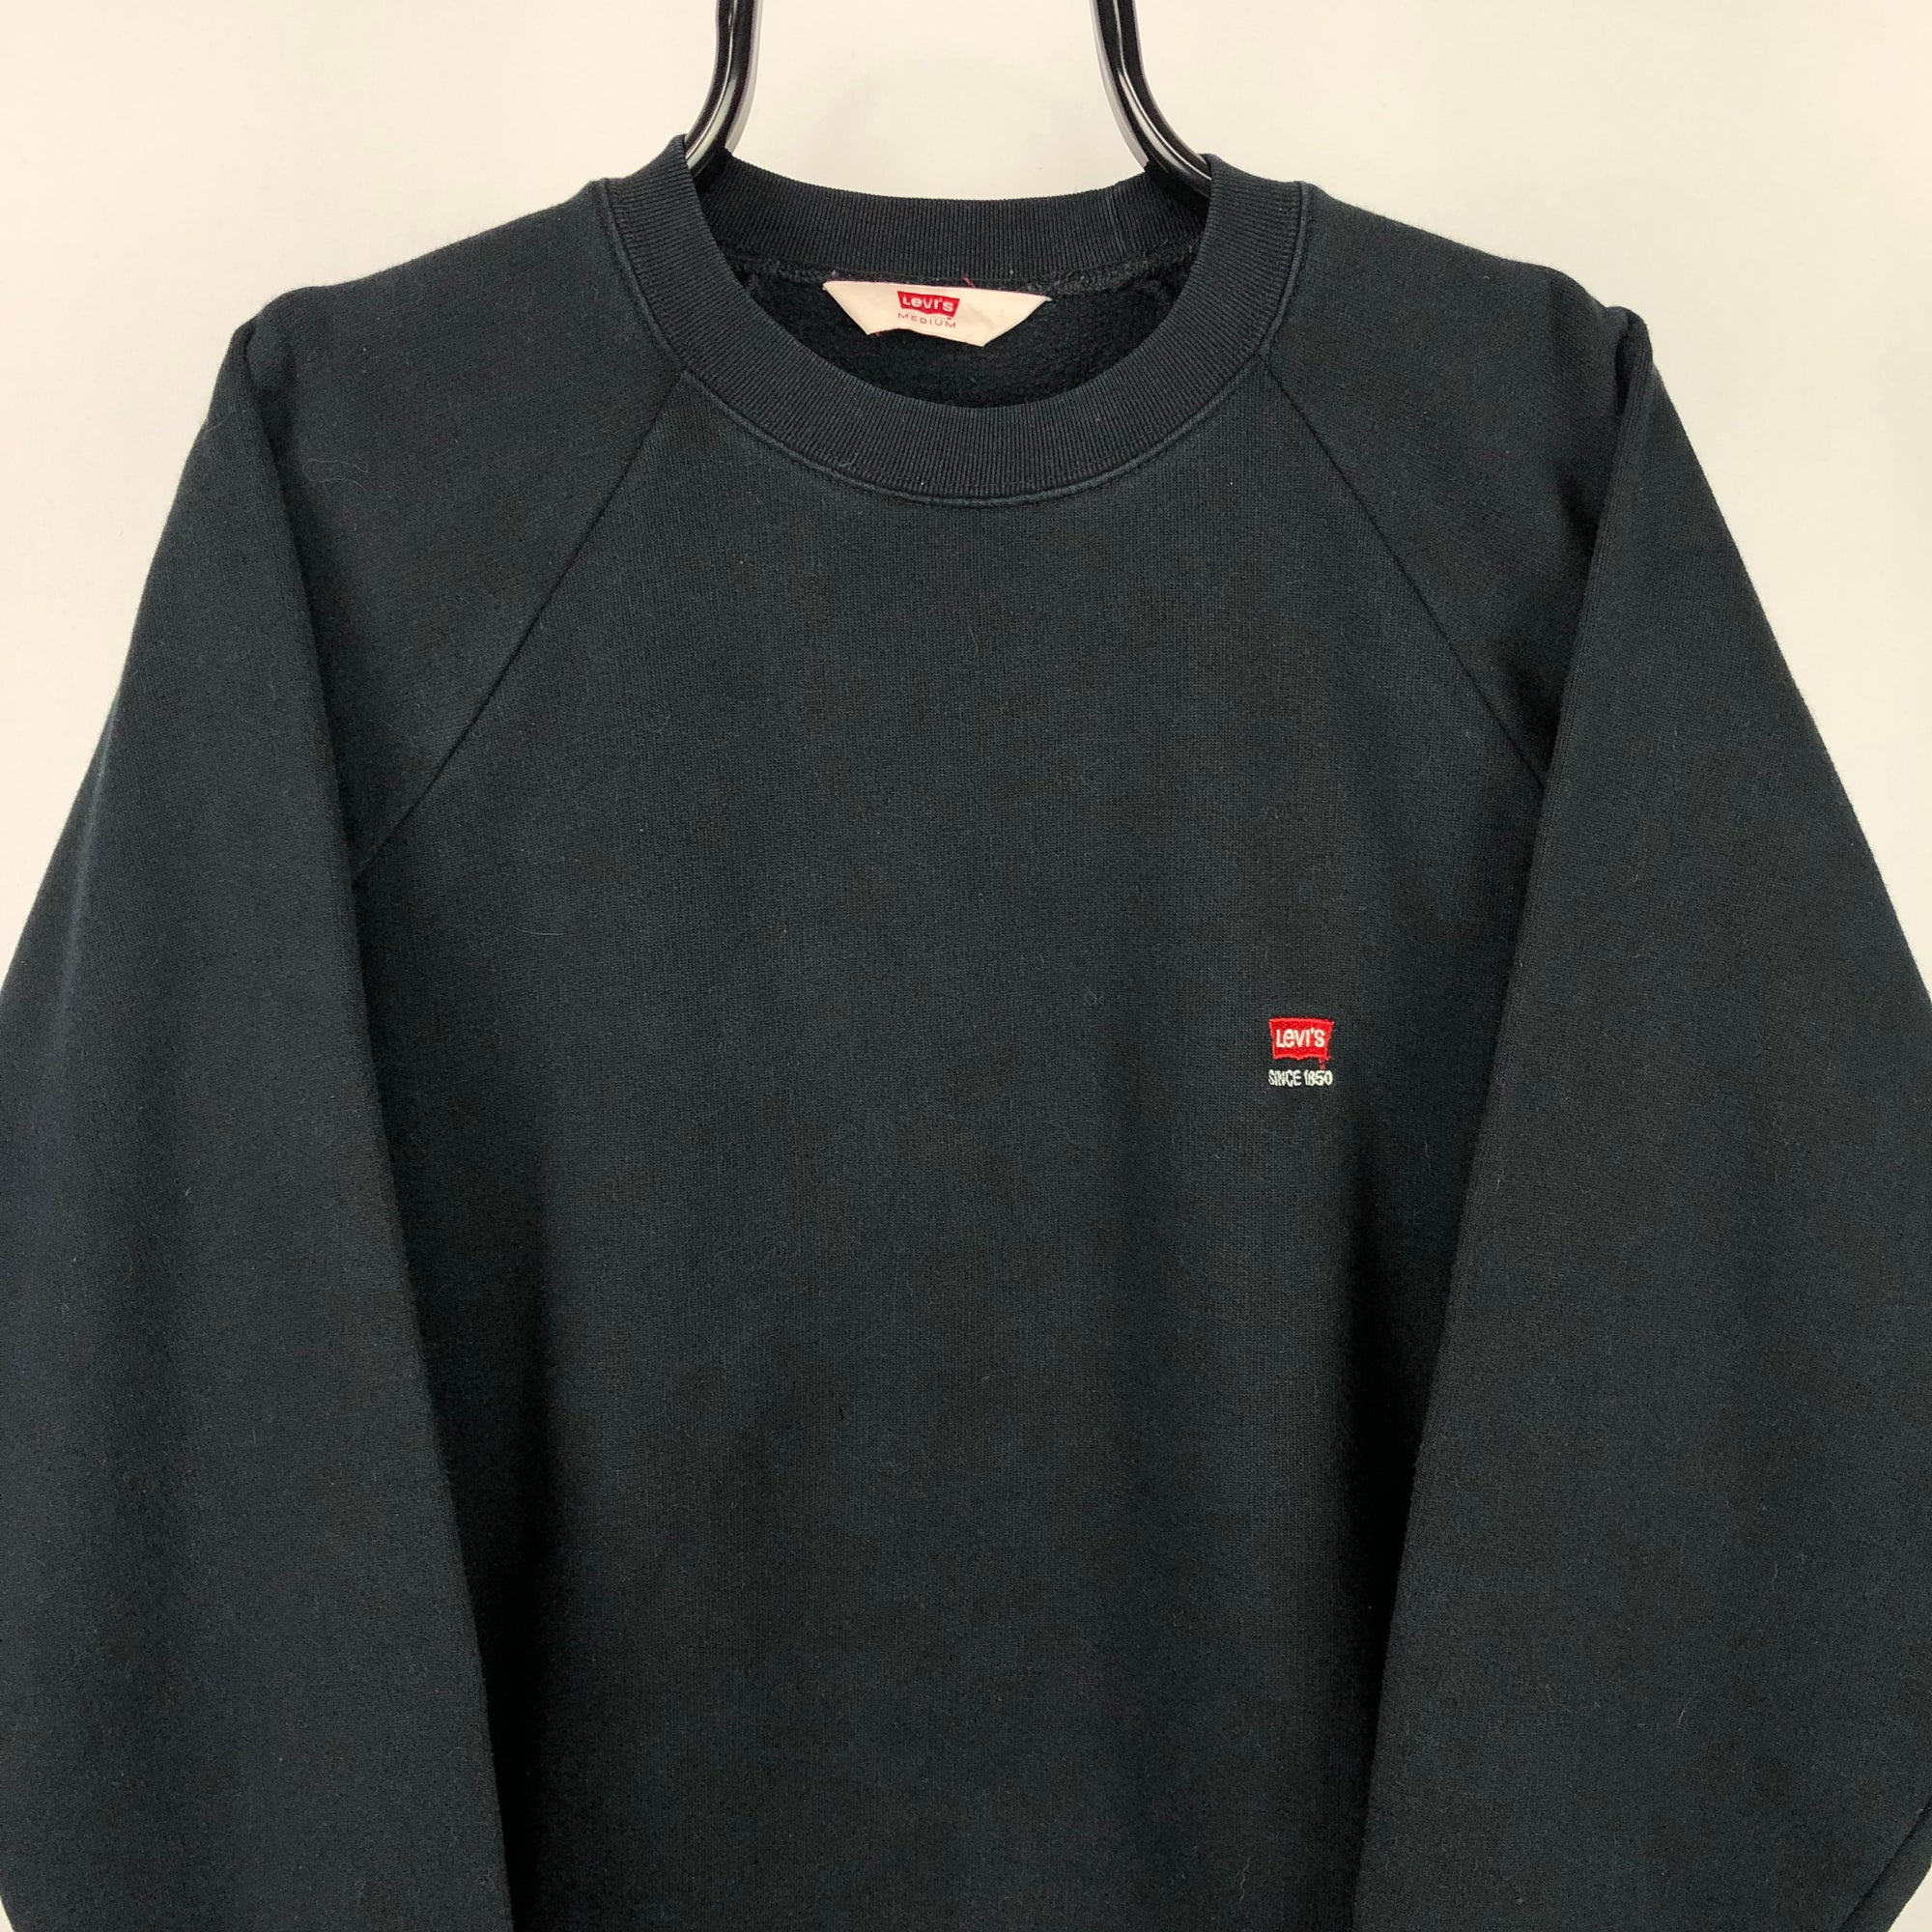 Vintage Levi's Embroidered Small Logo Sweatshirt in Black - Men's Medium/Women's Large